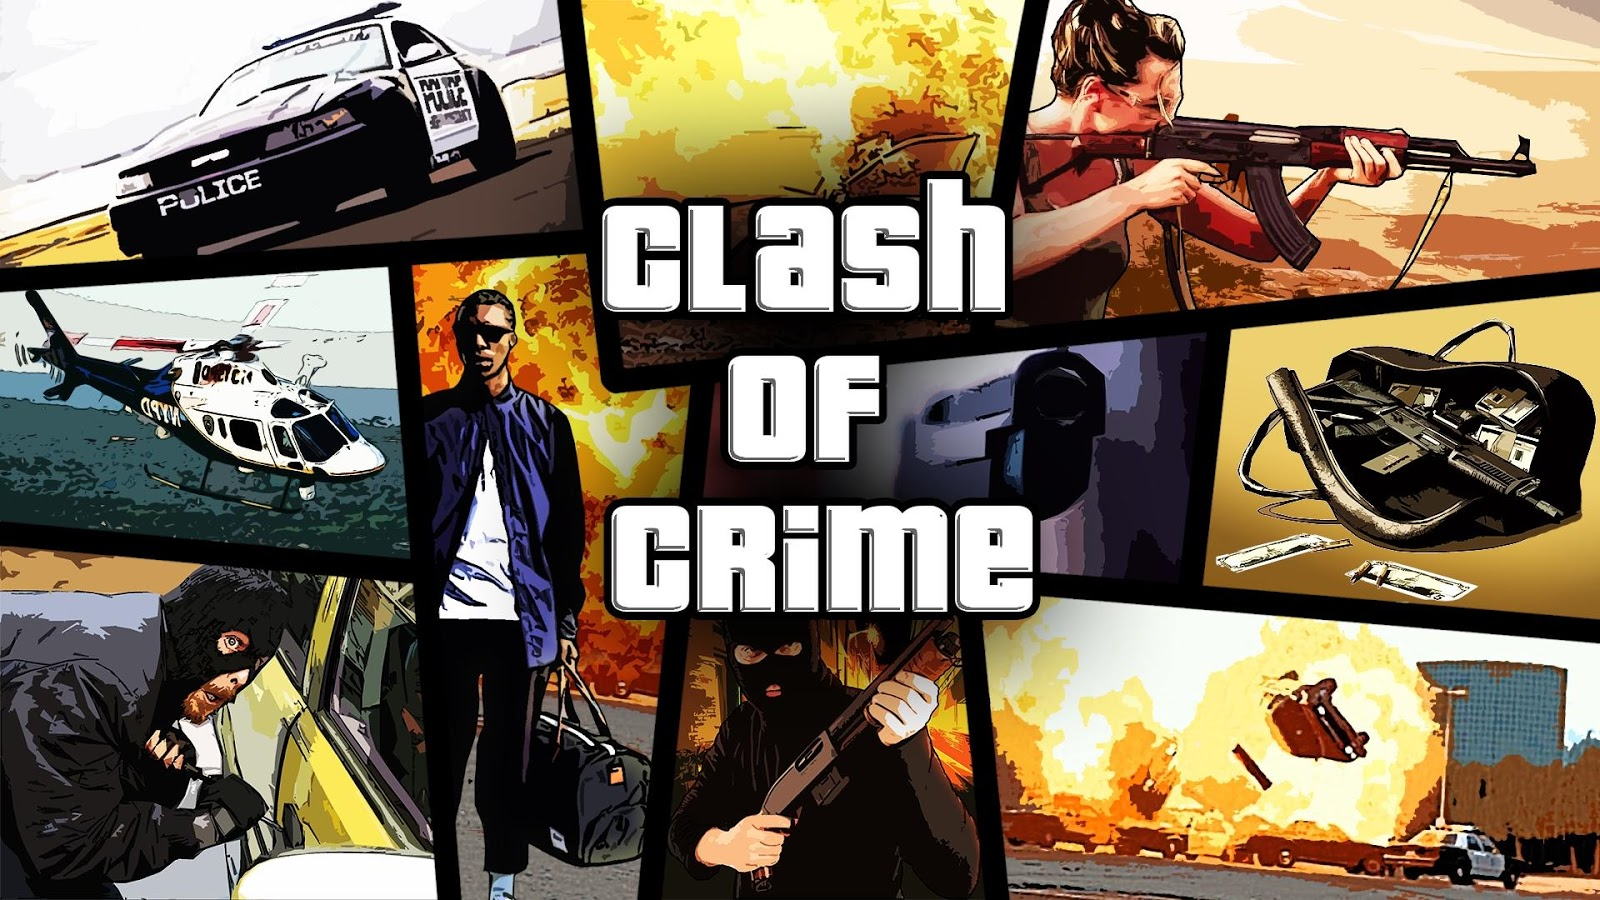 Скачать clash of crime mad san andreas 1. 2. 8 для android.